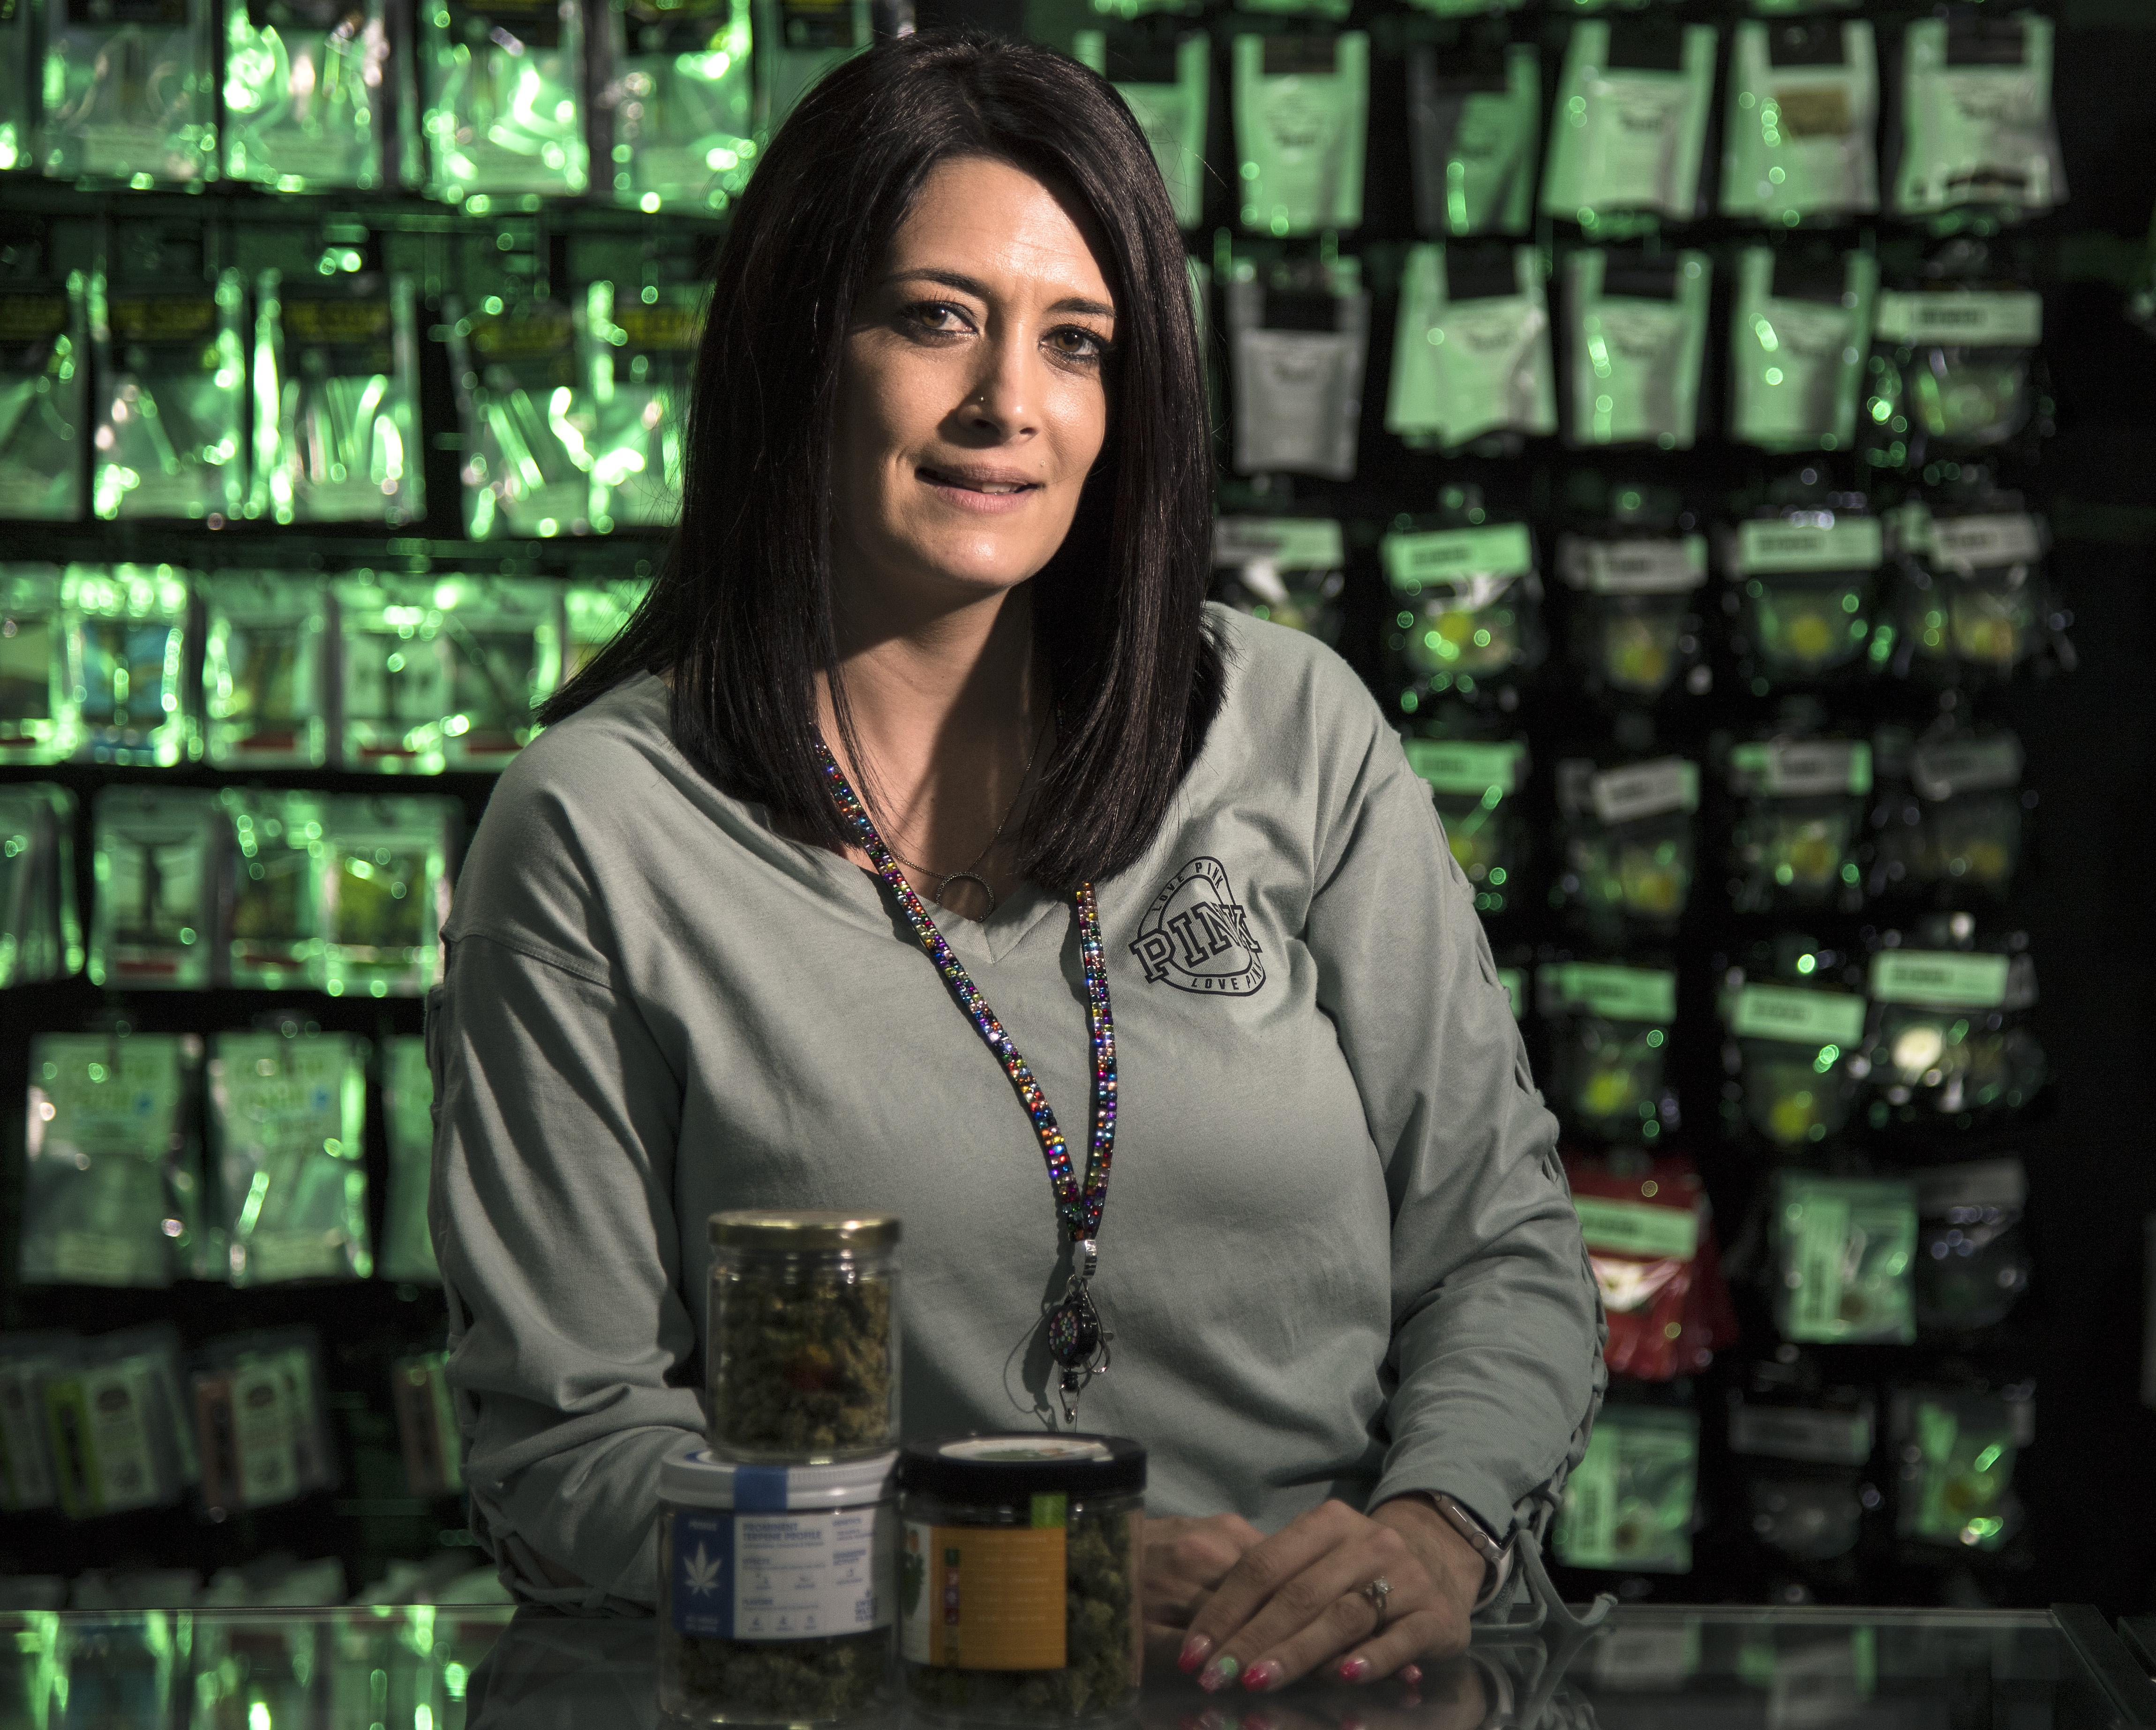 Women play leading role in emerging marijuana businesses in Washington state